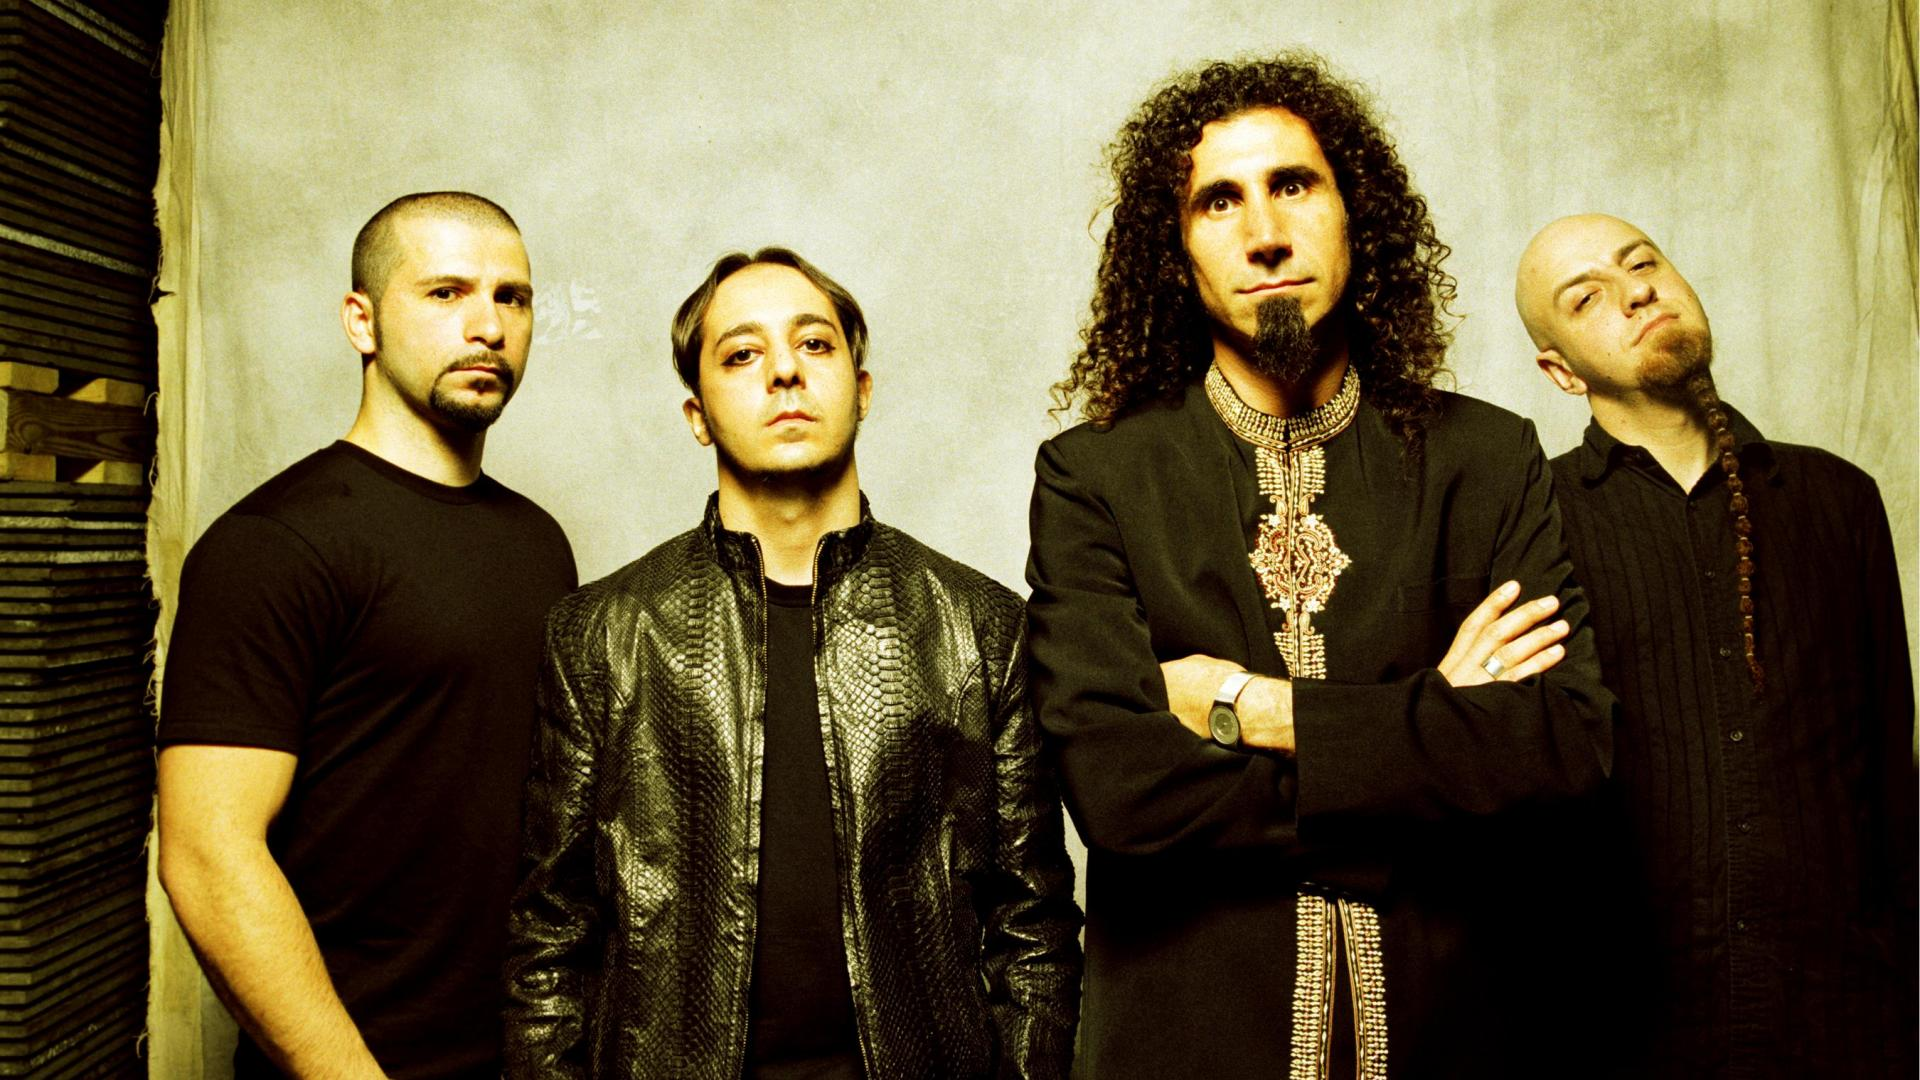 System Of A Down Computer Wallpapers Desktop Backgrounds 1920x1080 1920x1080